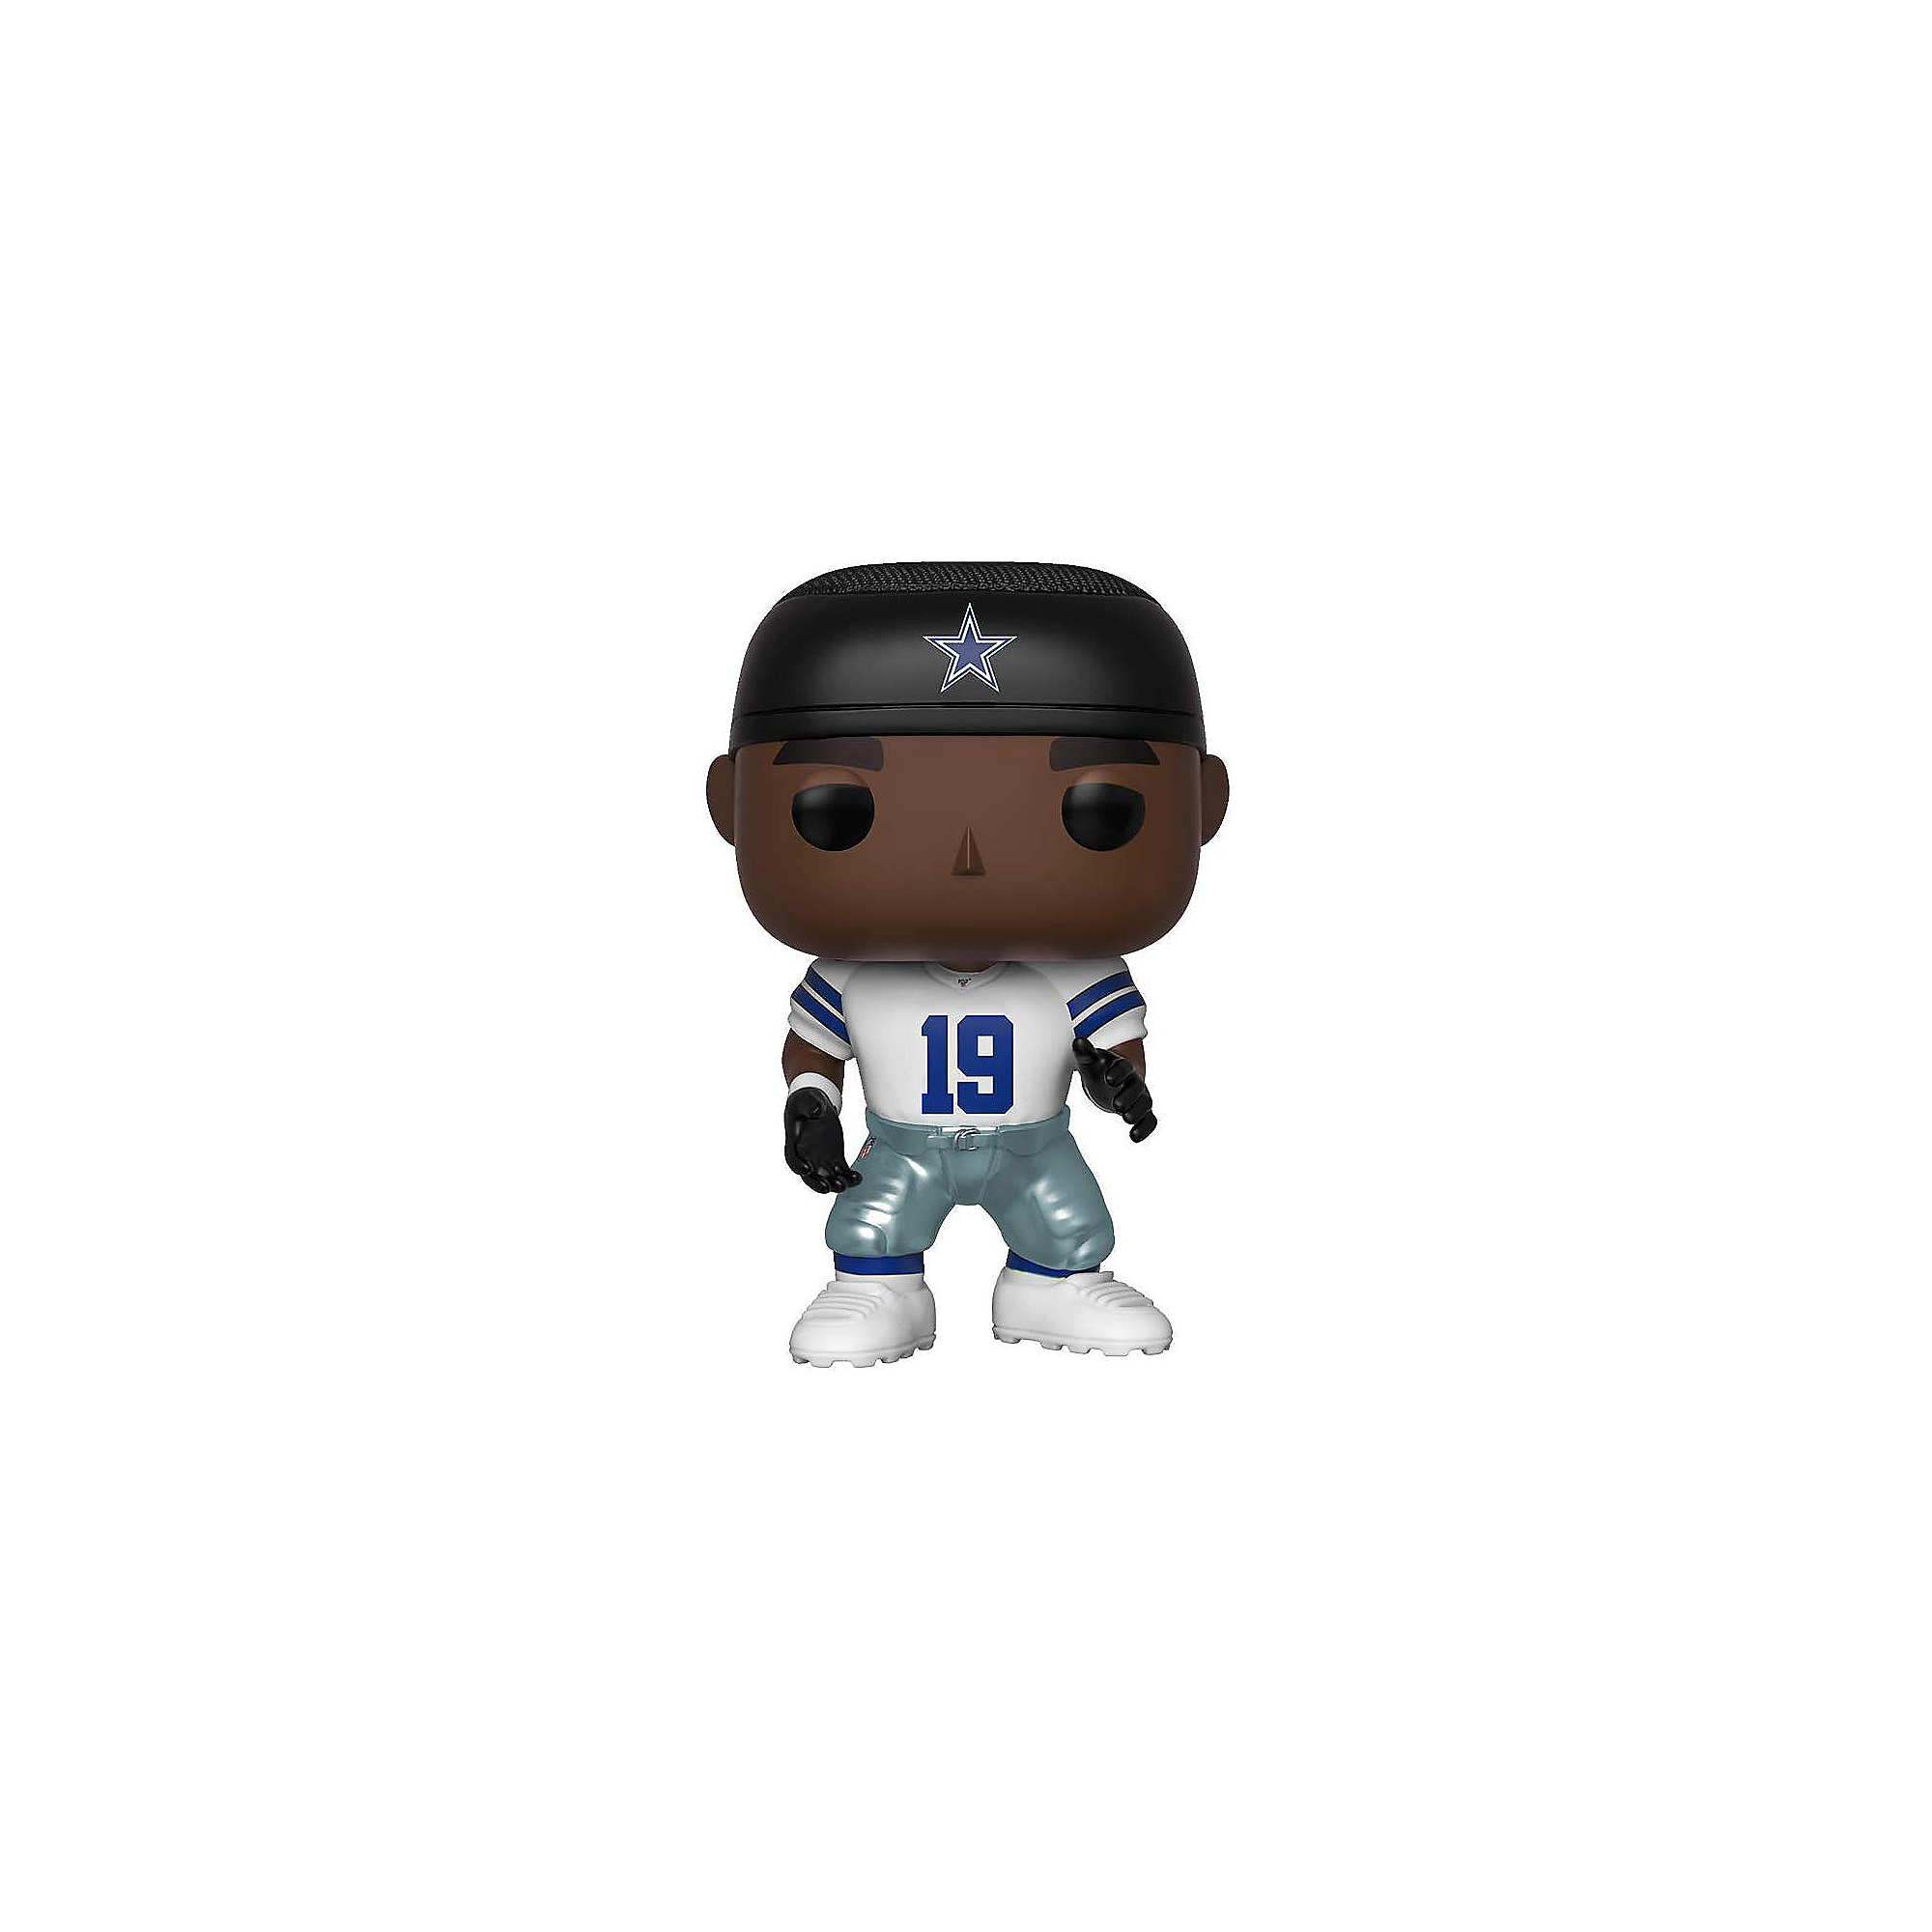 Dallas Cowboys Funko POP Series 6 Amari Cooper Vinyl Figure